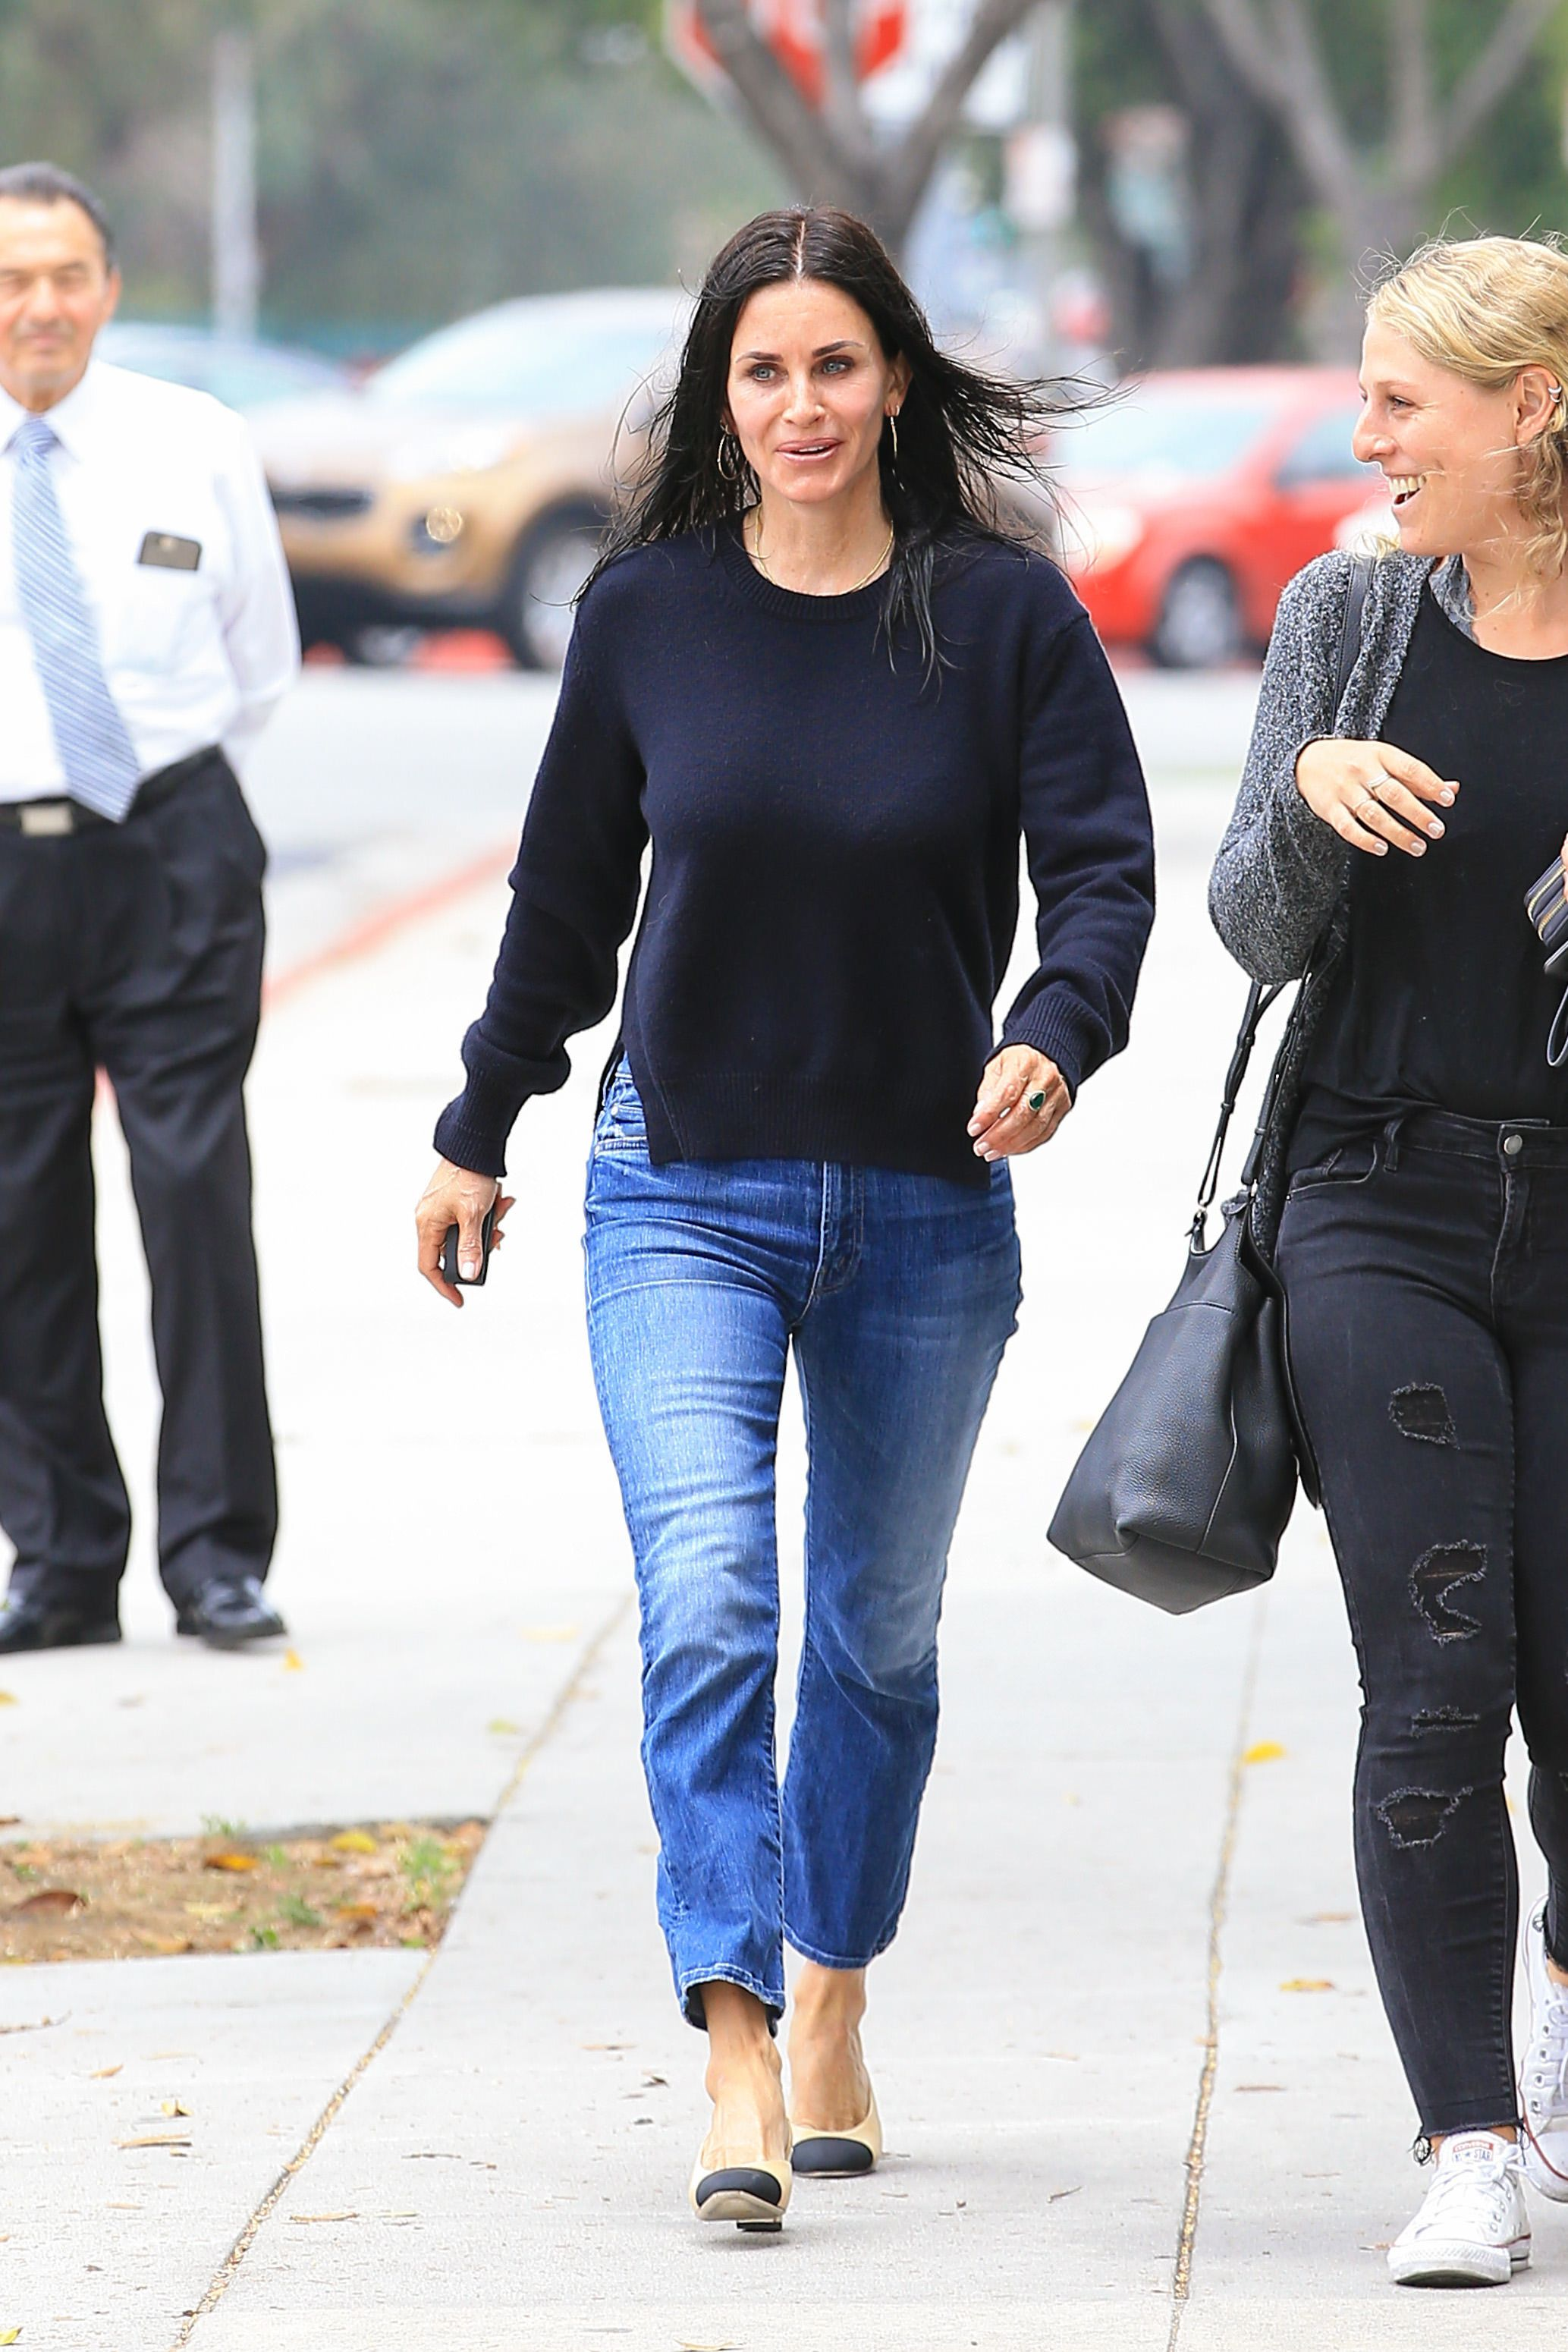 LOS ANGELES, CA - JUNE 06: Courteney Cox is seen on June 06, 2017 in Los Angeles, California.  (Photo by bestpix/Bauer-Griffin/GC Images)